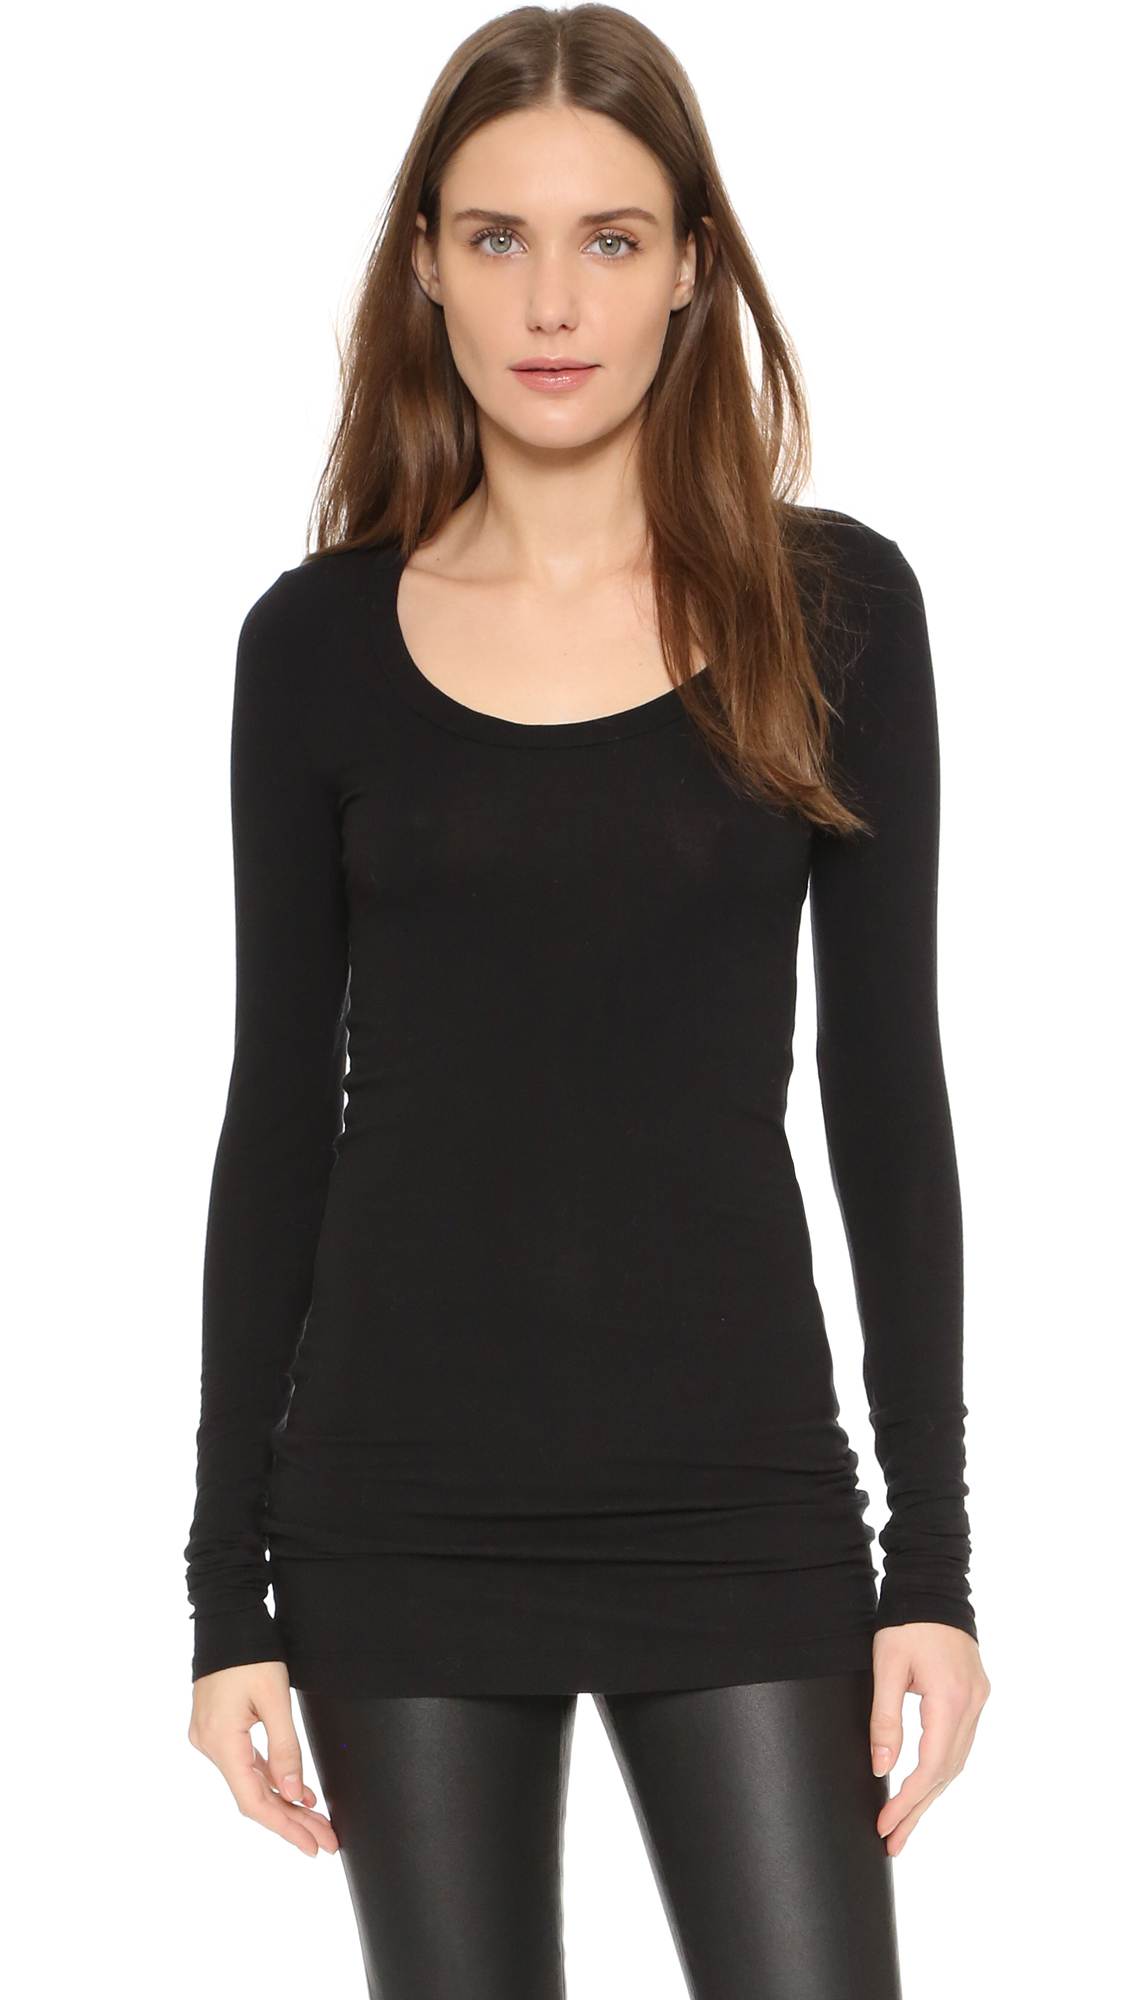 Splendid Layers Long Sleeve Tee - Black